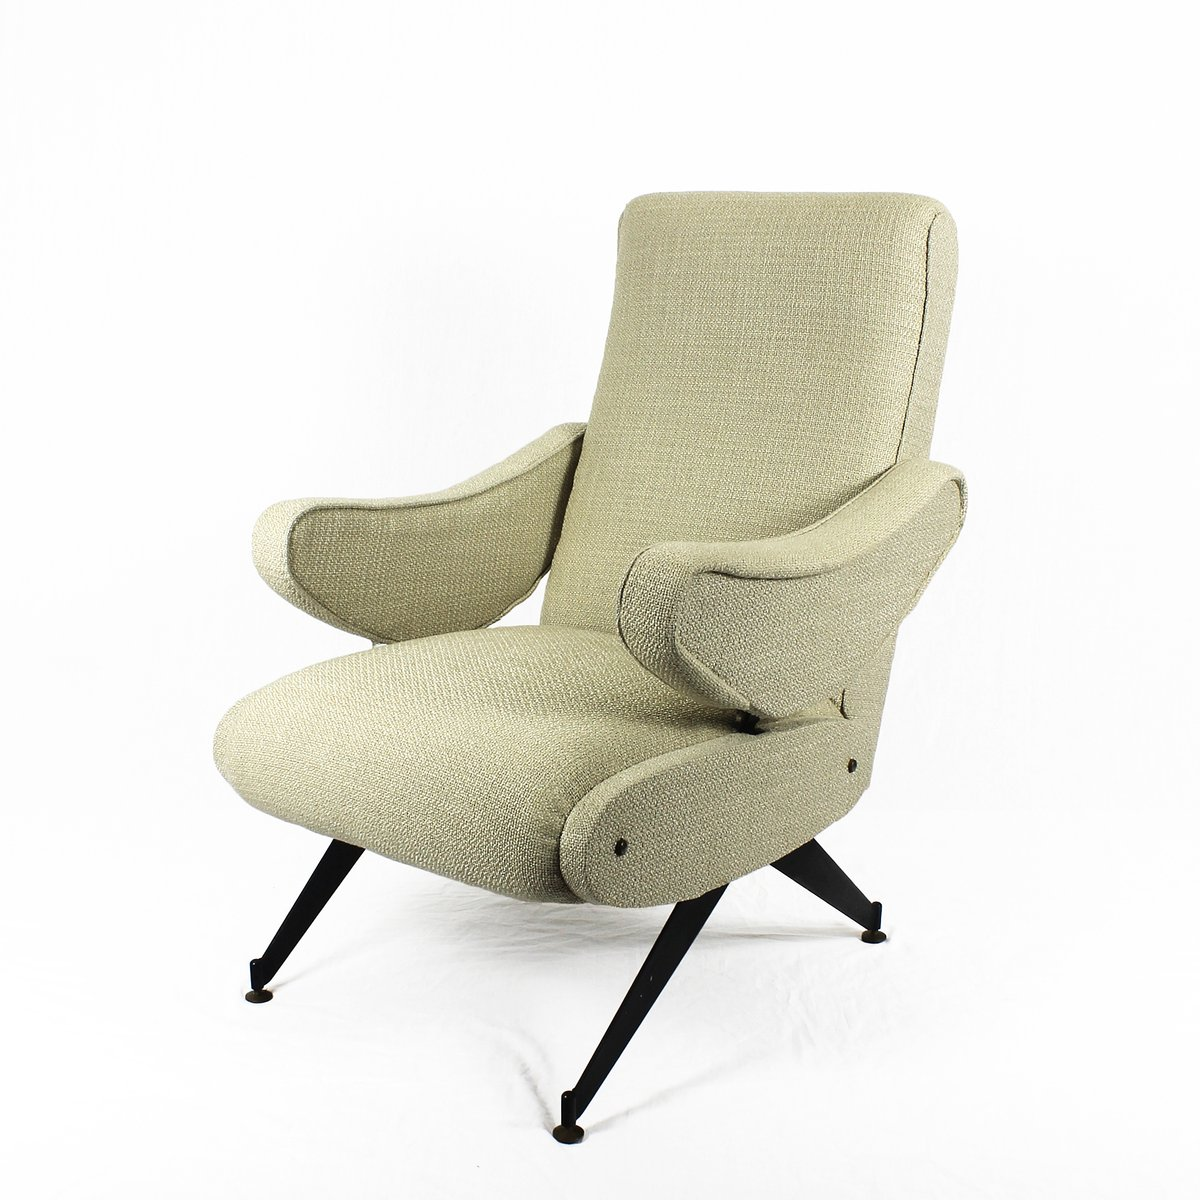 Fauteuil inclinable fauteuil inclinable with fauteuil inclinable interesting fauteuil - Poltrona reclinabile ikea ...